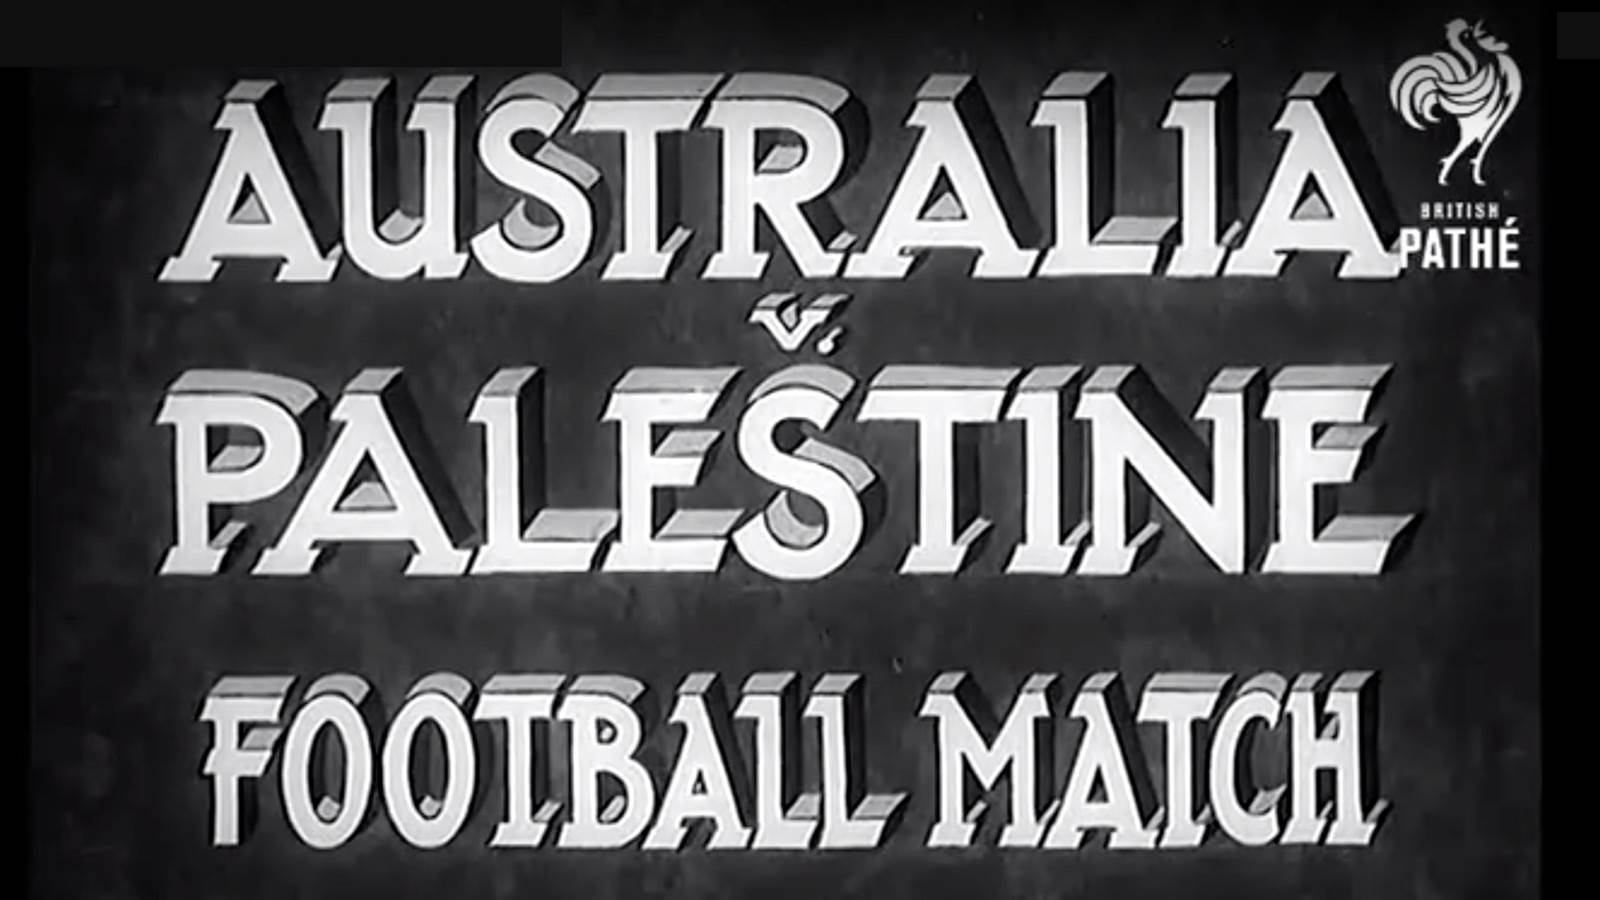 Throwback Thursday! Socceroos v 'Palestine' in 1939